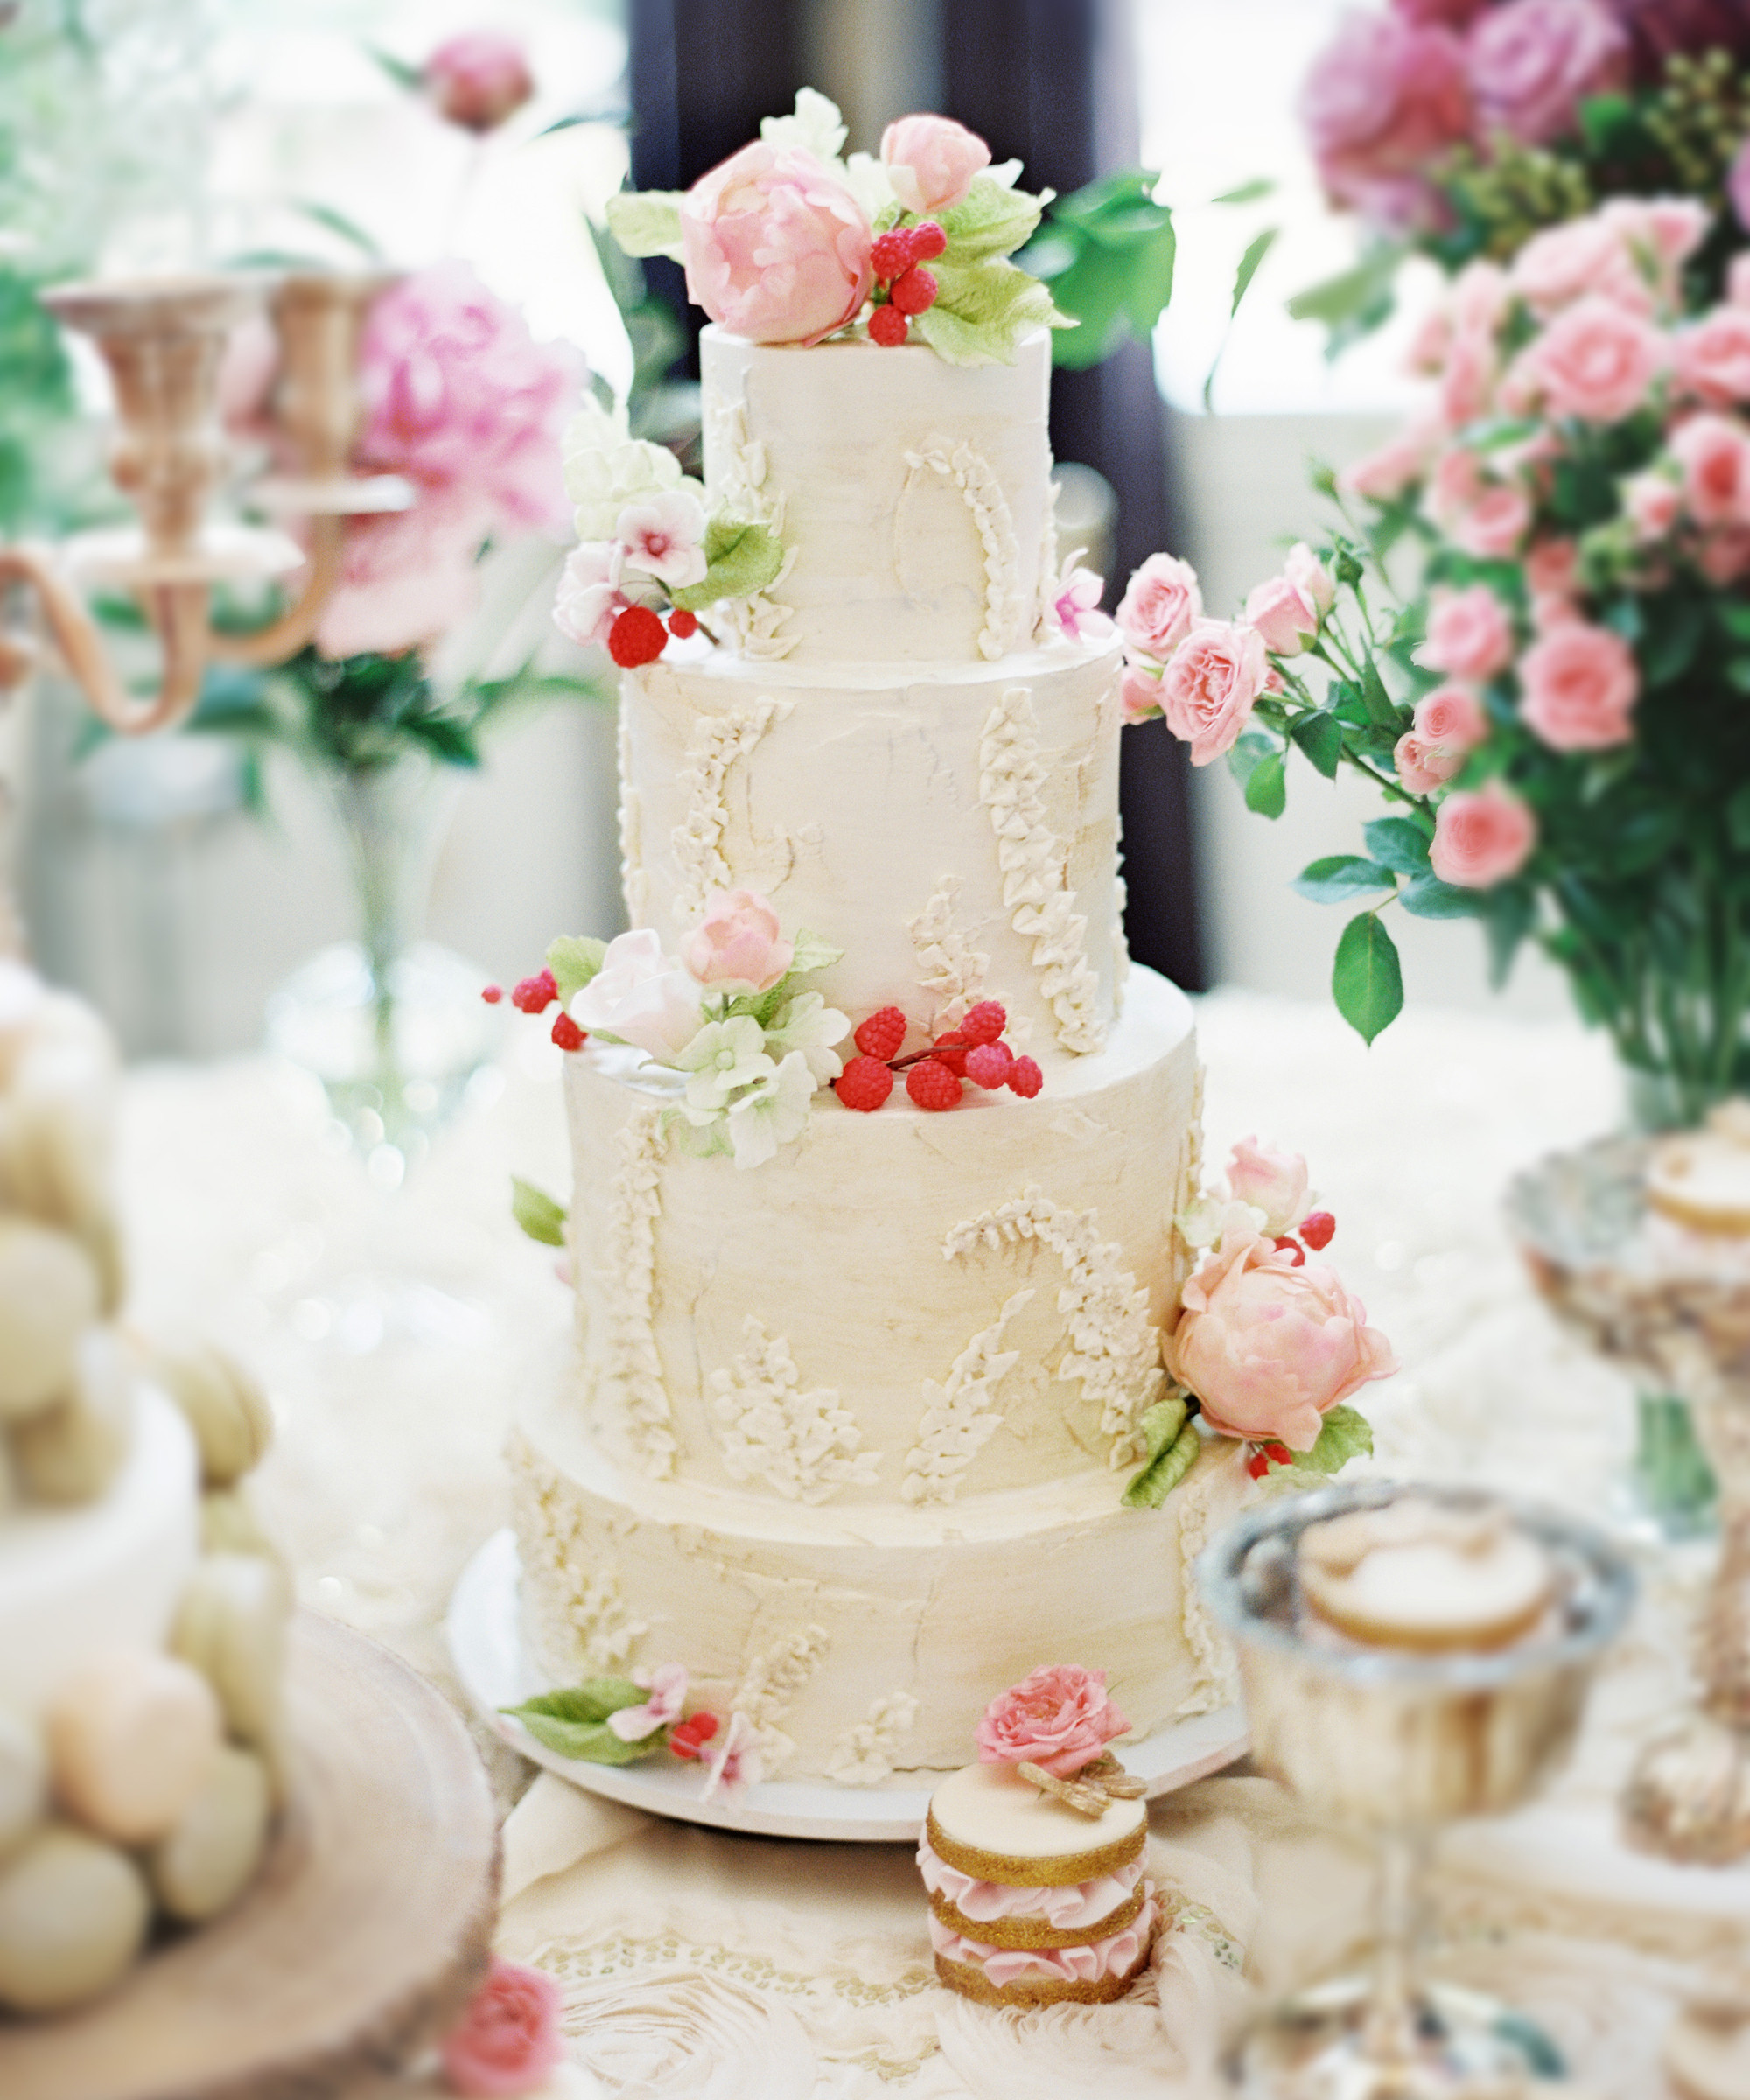 Pics Of Wedding Cakes  Vegan and Gluten Free Wedding Cake Ideas Alternative